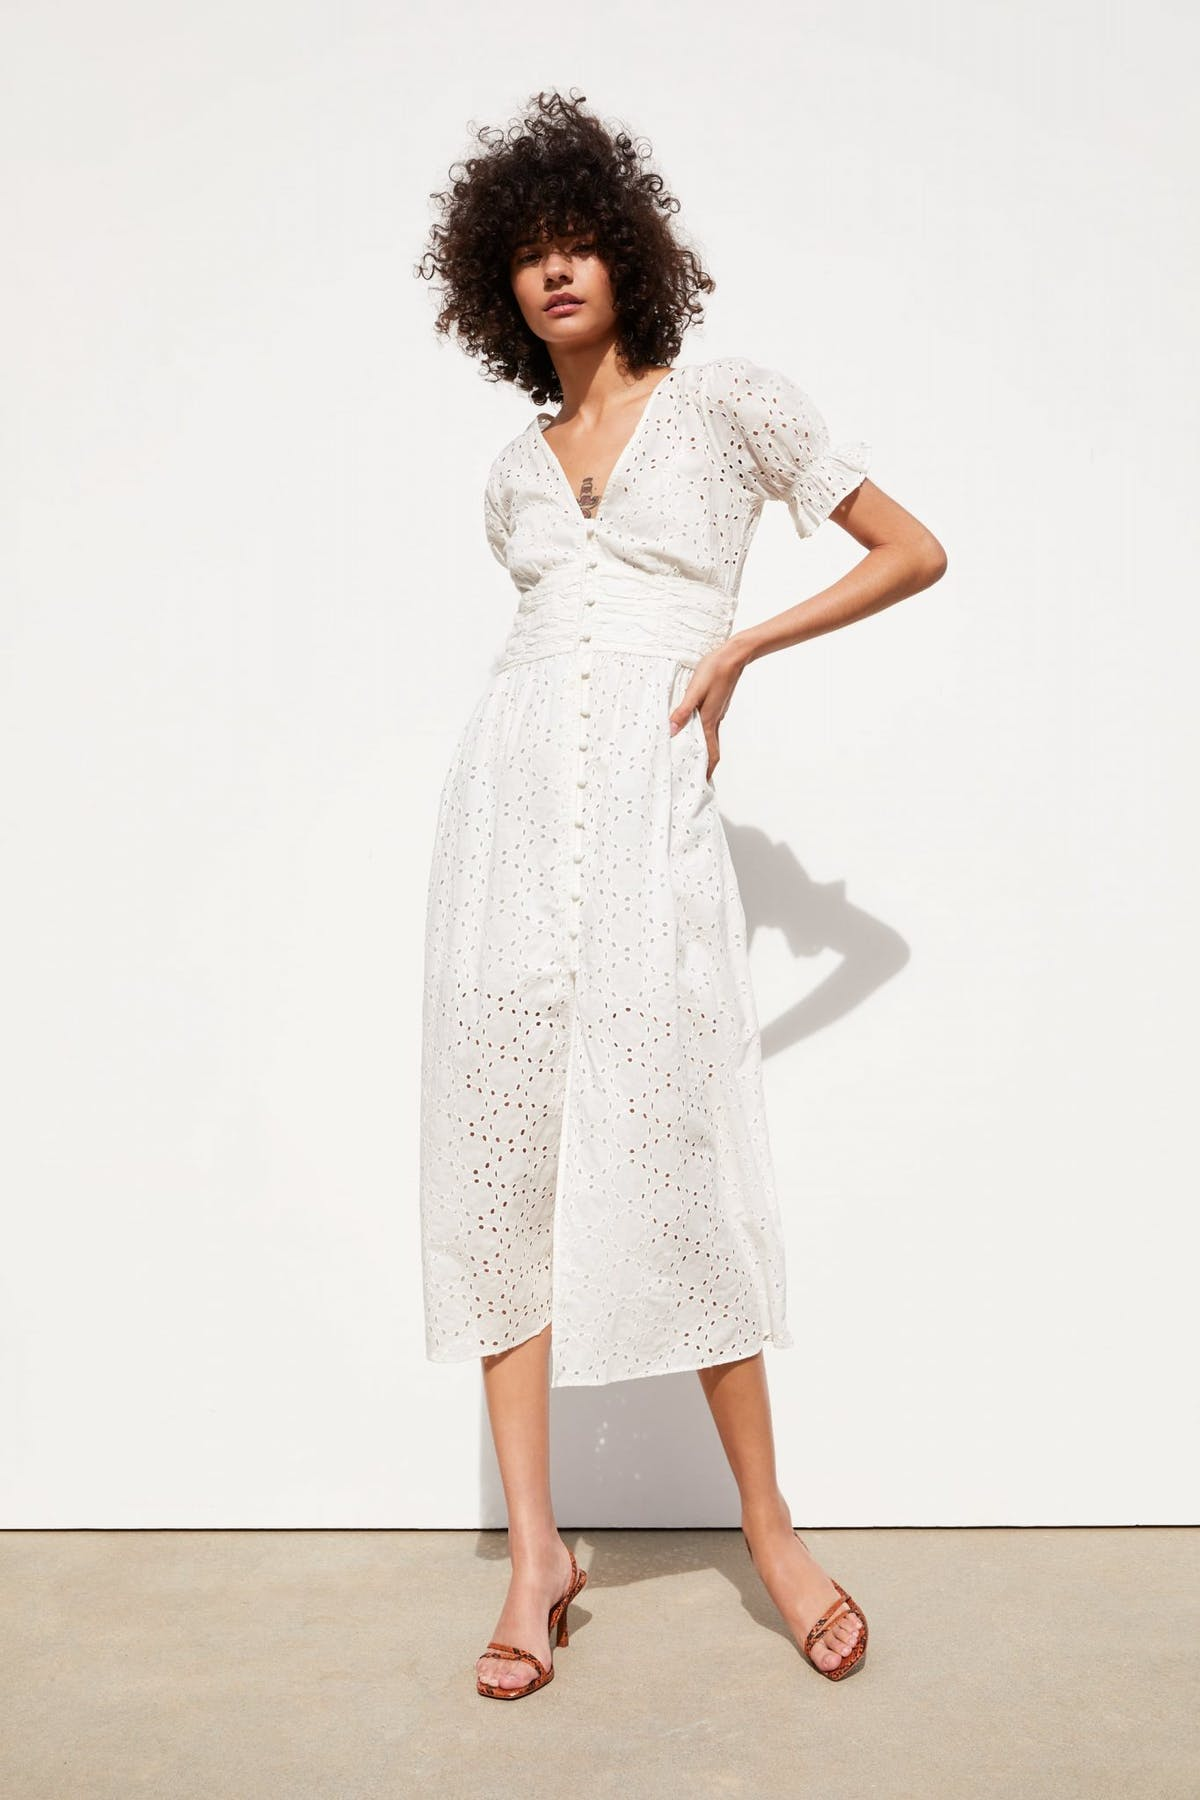 318c1288a Naturally this one is selling out fast so you'll have to be quick. Puff  sleeves, nipped in waist, covered buttons and of course the broadarie  anglaise style ...